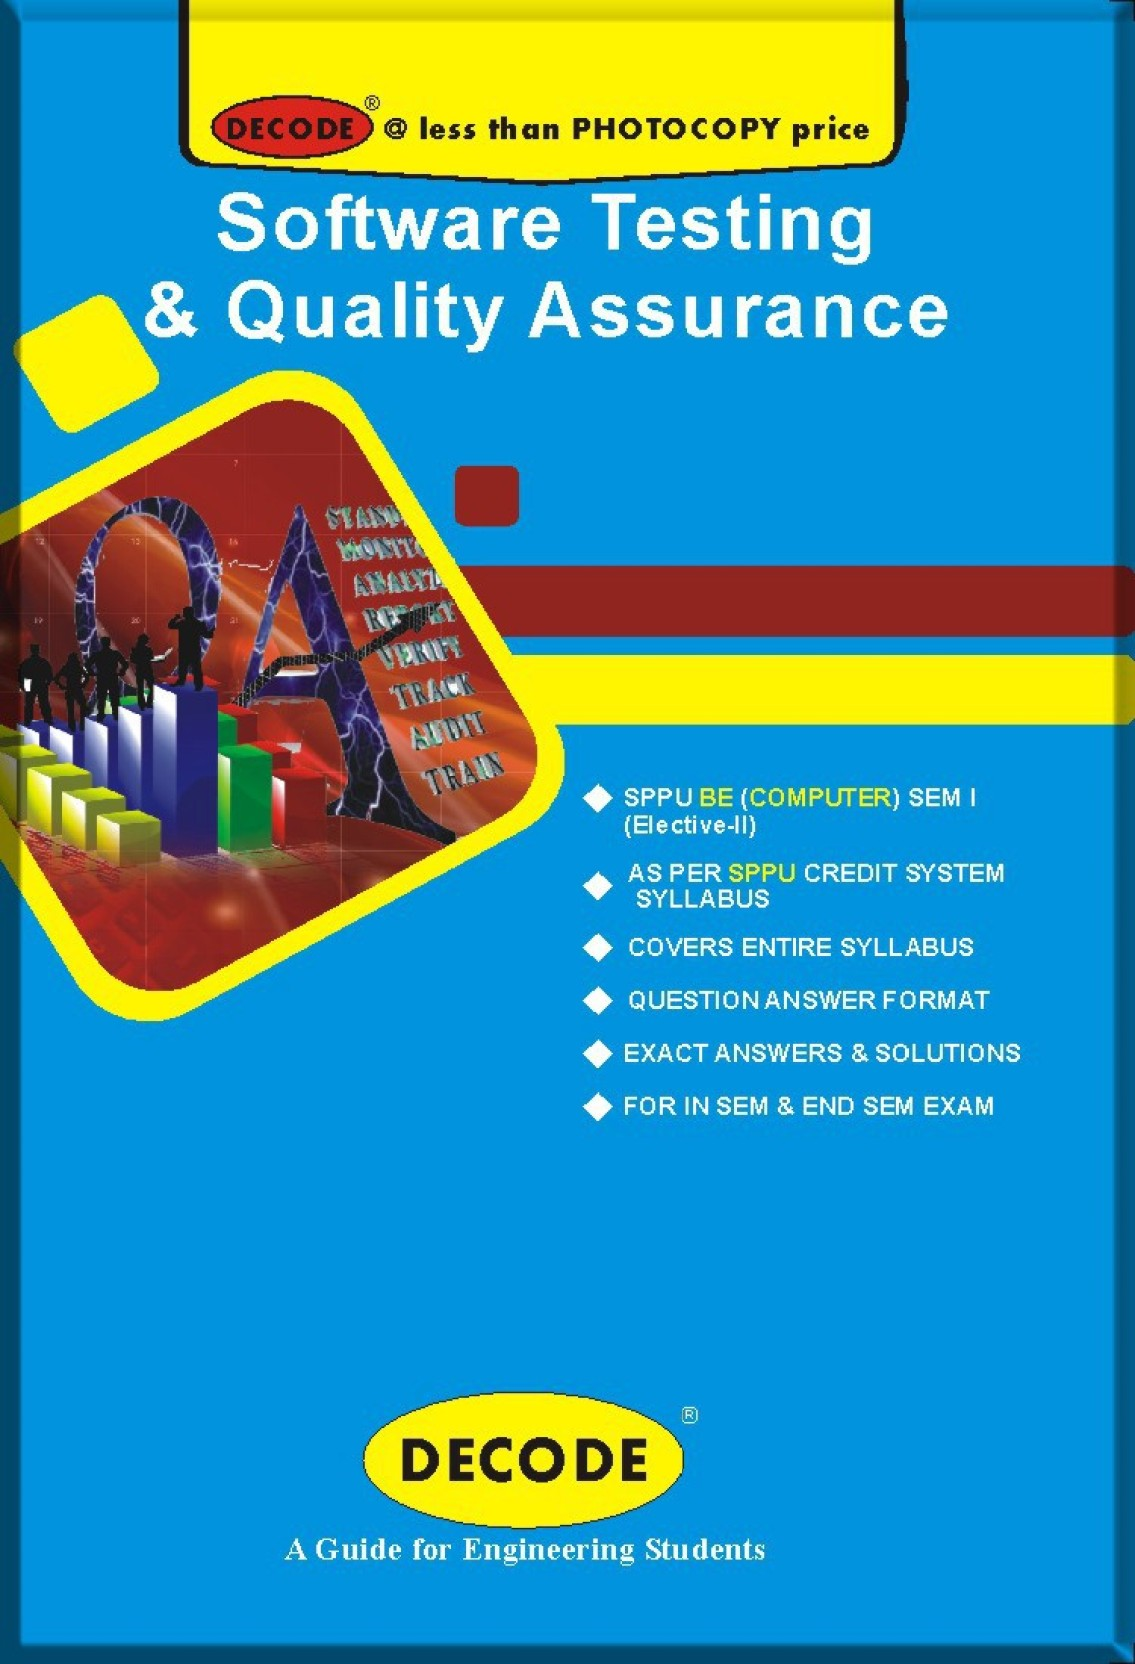 DECODE-Software Testing and quality assurance for SPPU (BE